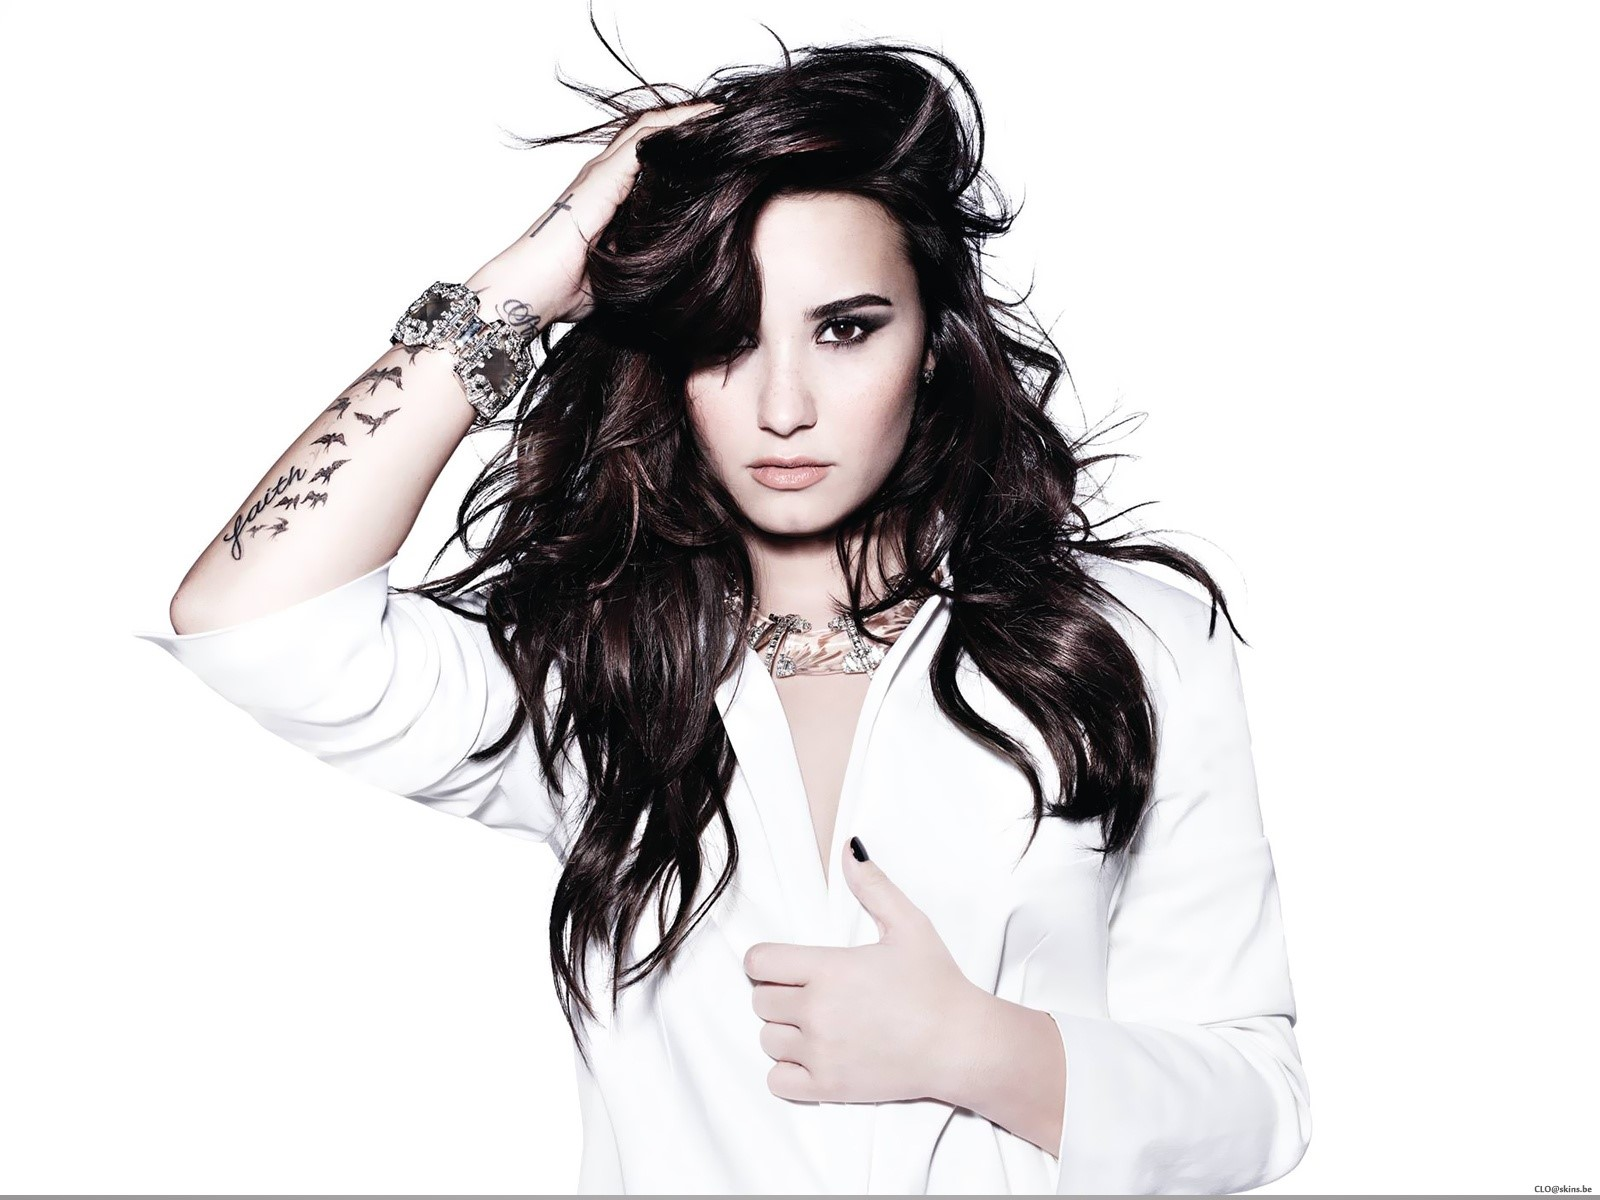 Wallpaper Demi lovato for your album